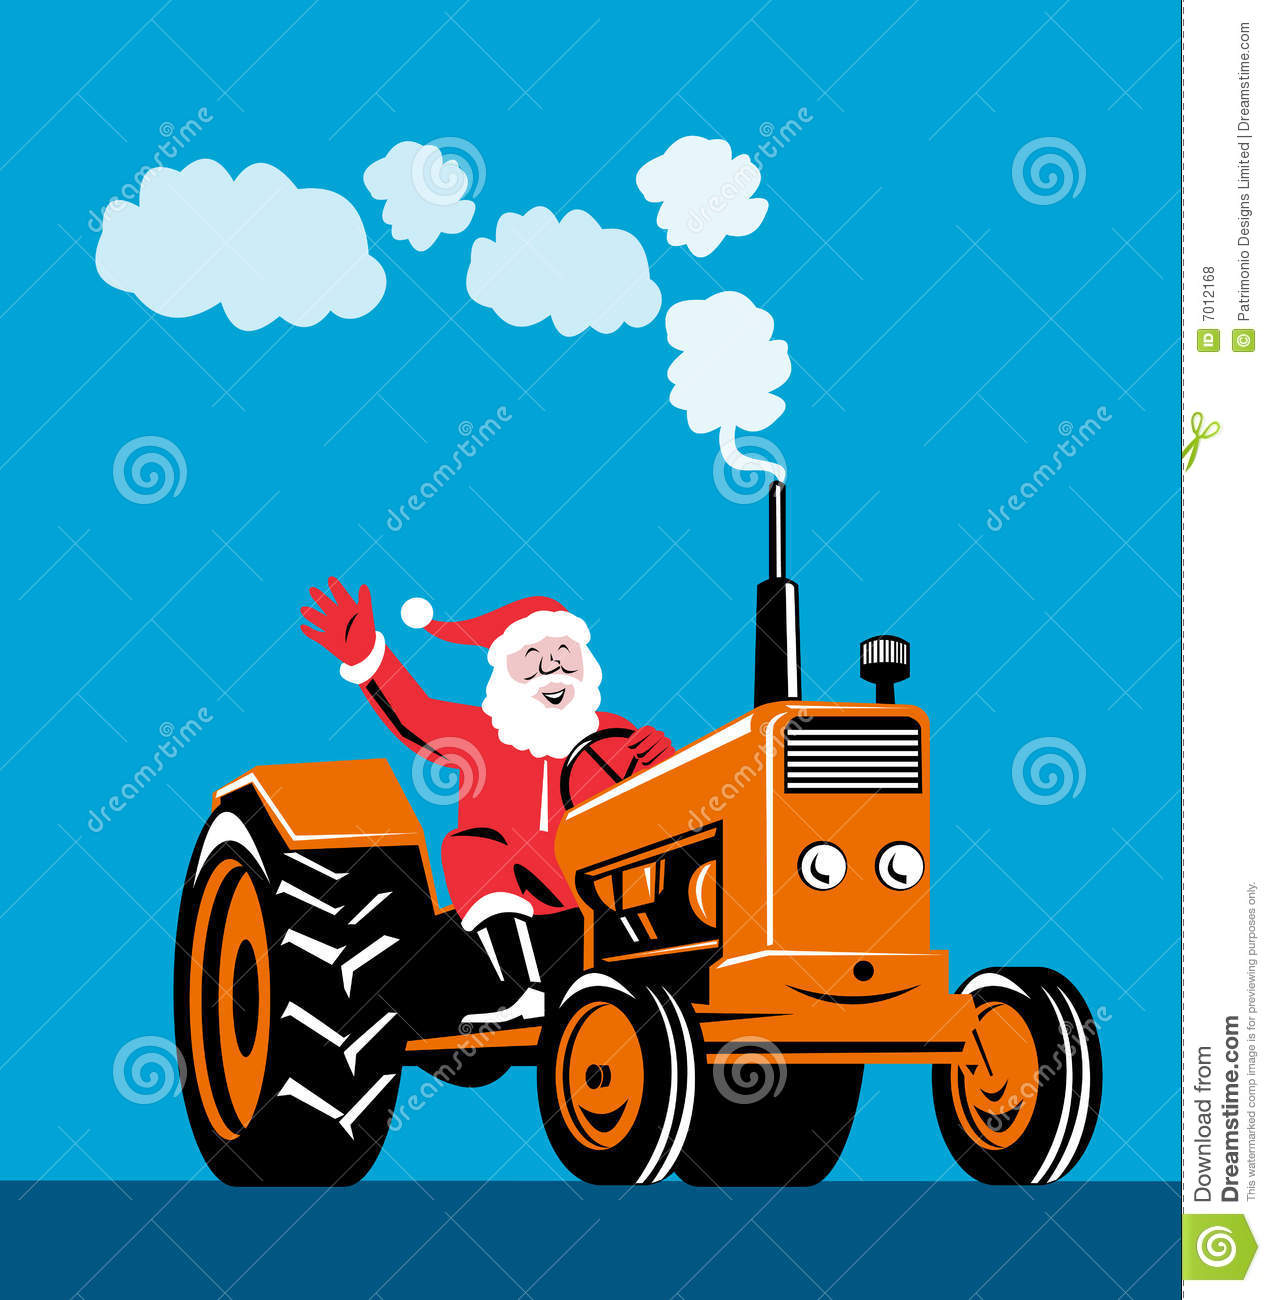 santa claus riding a tractor stock illustration